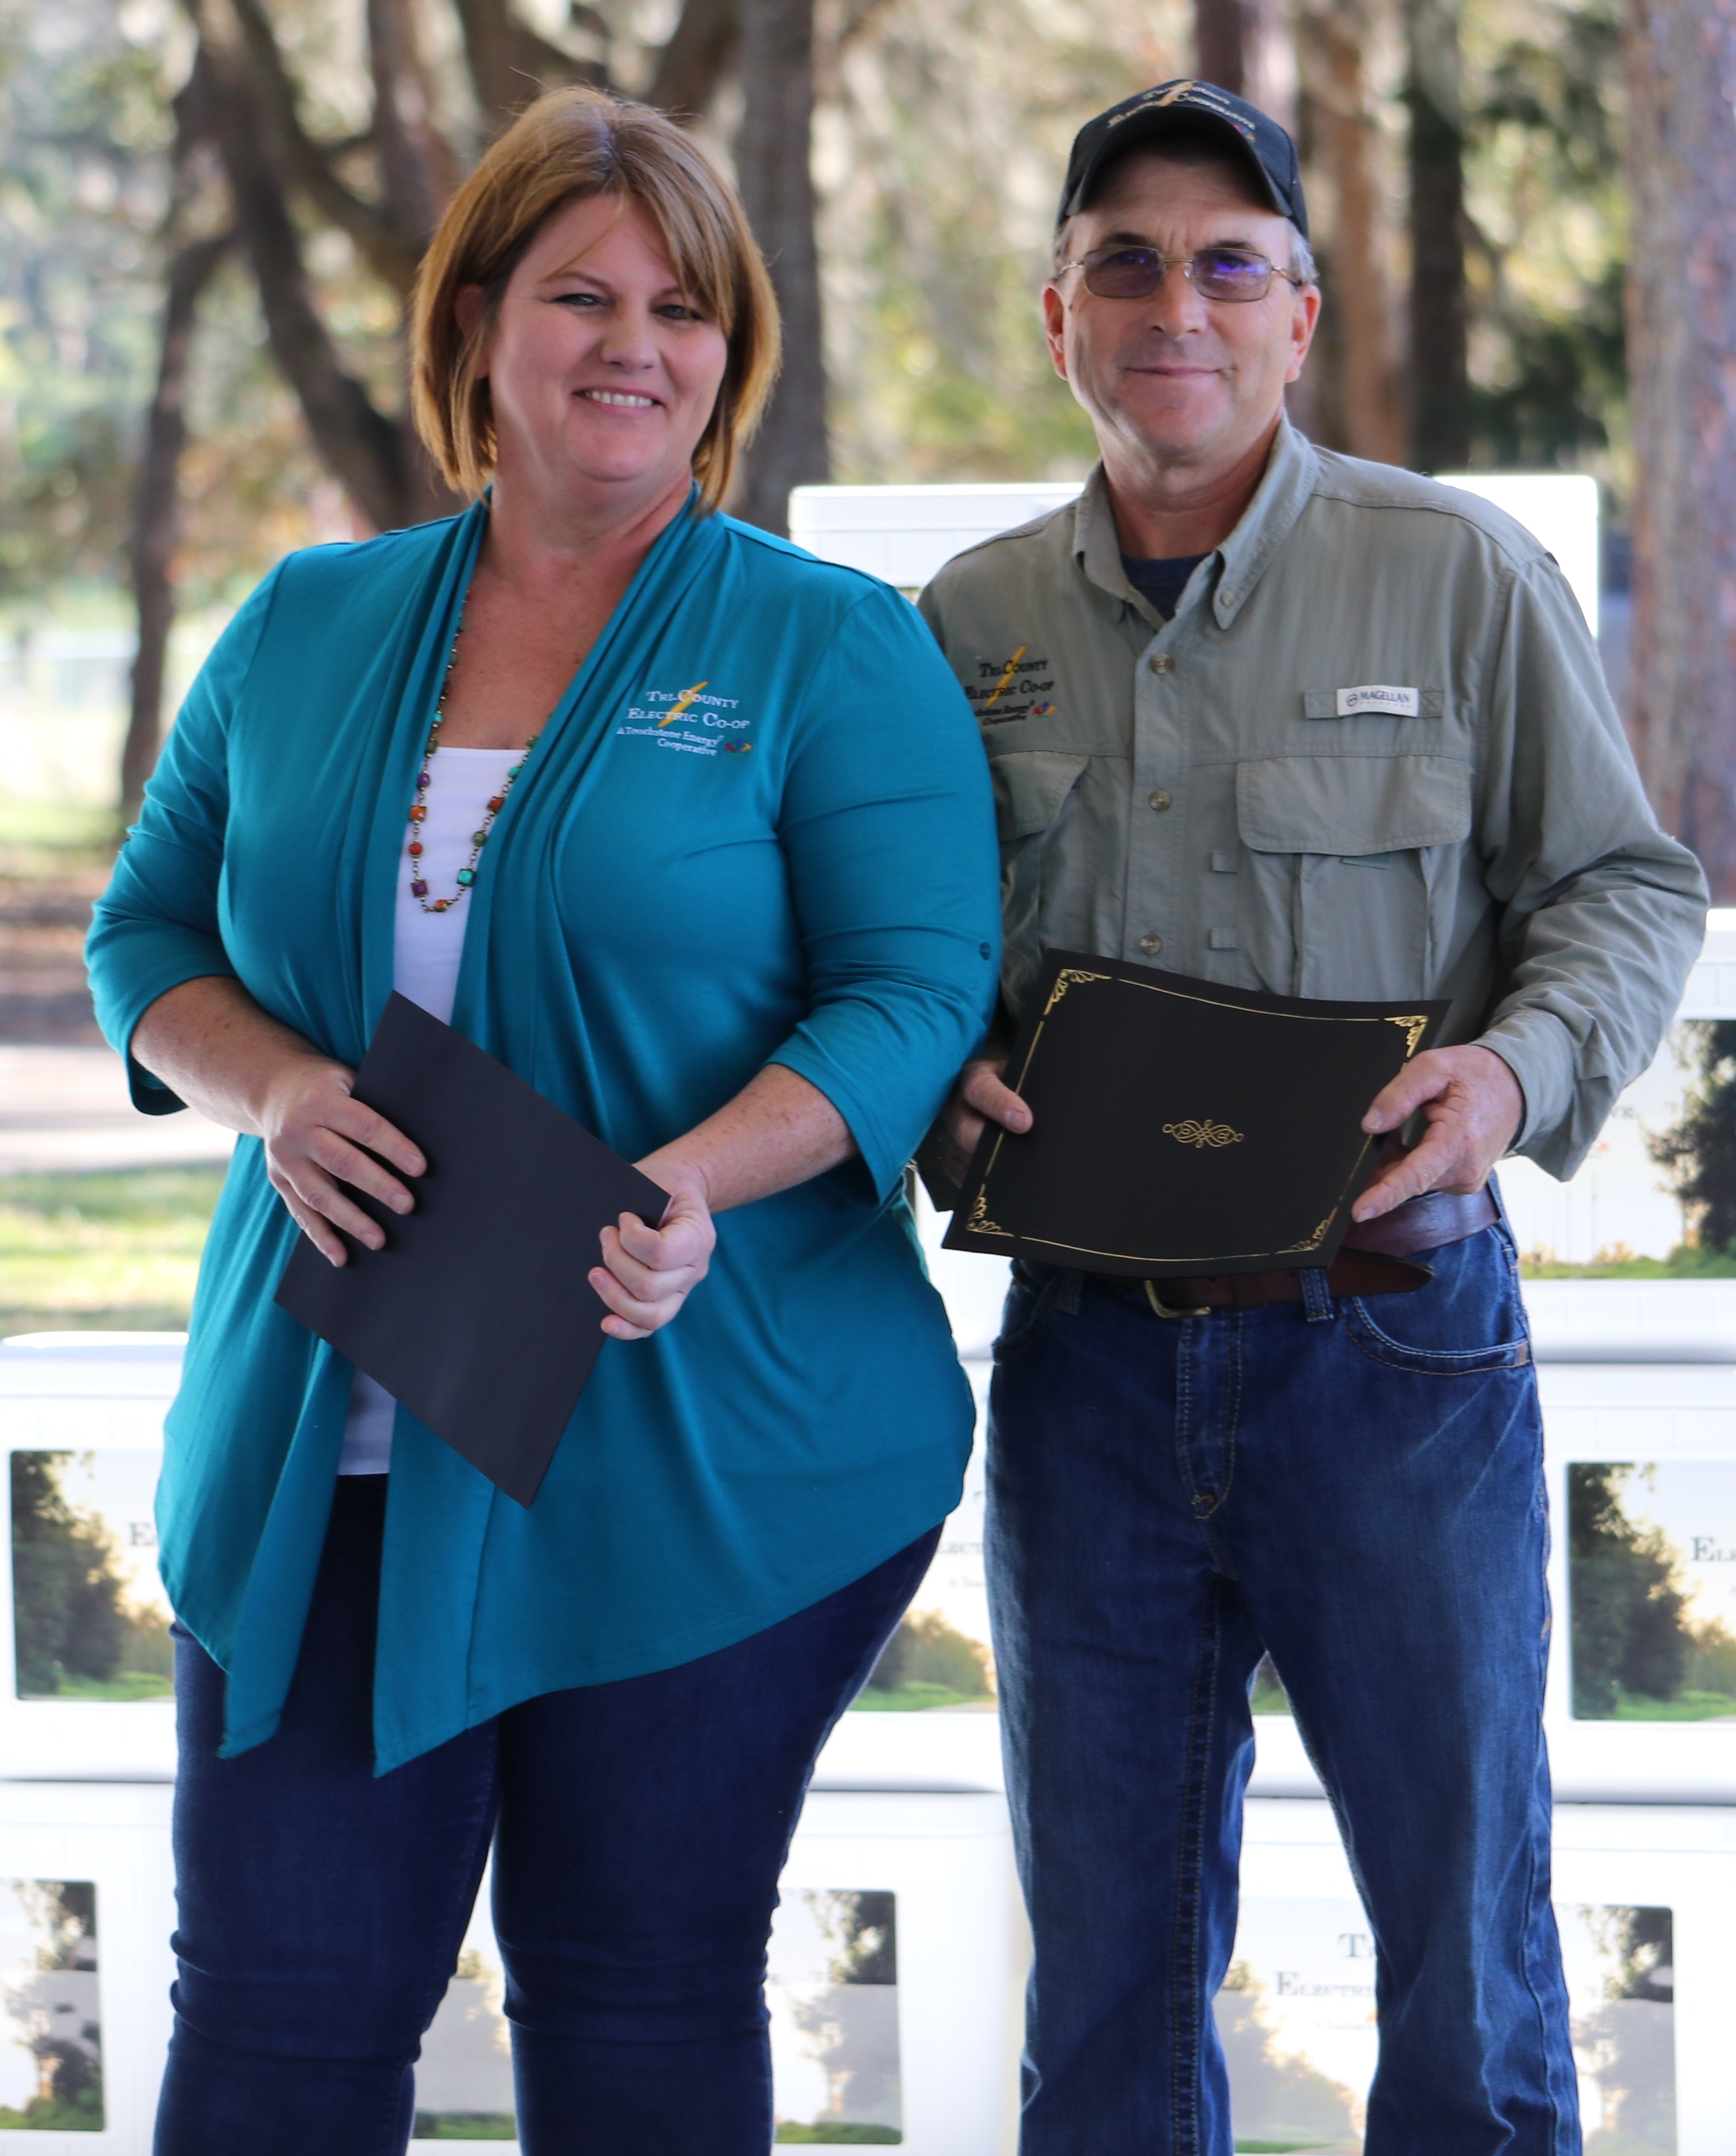 Amy Straka and Allen Welch recognized for completing the supervisory training